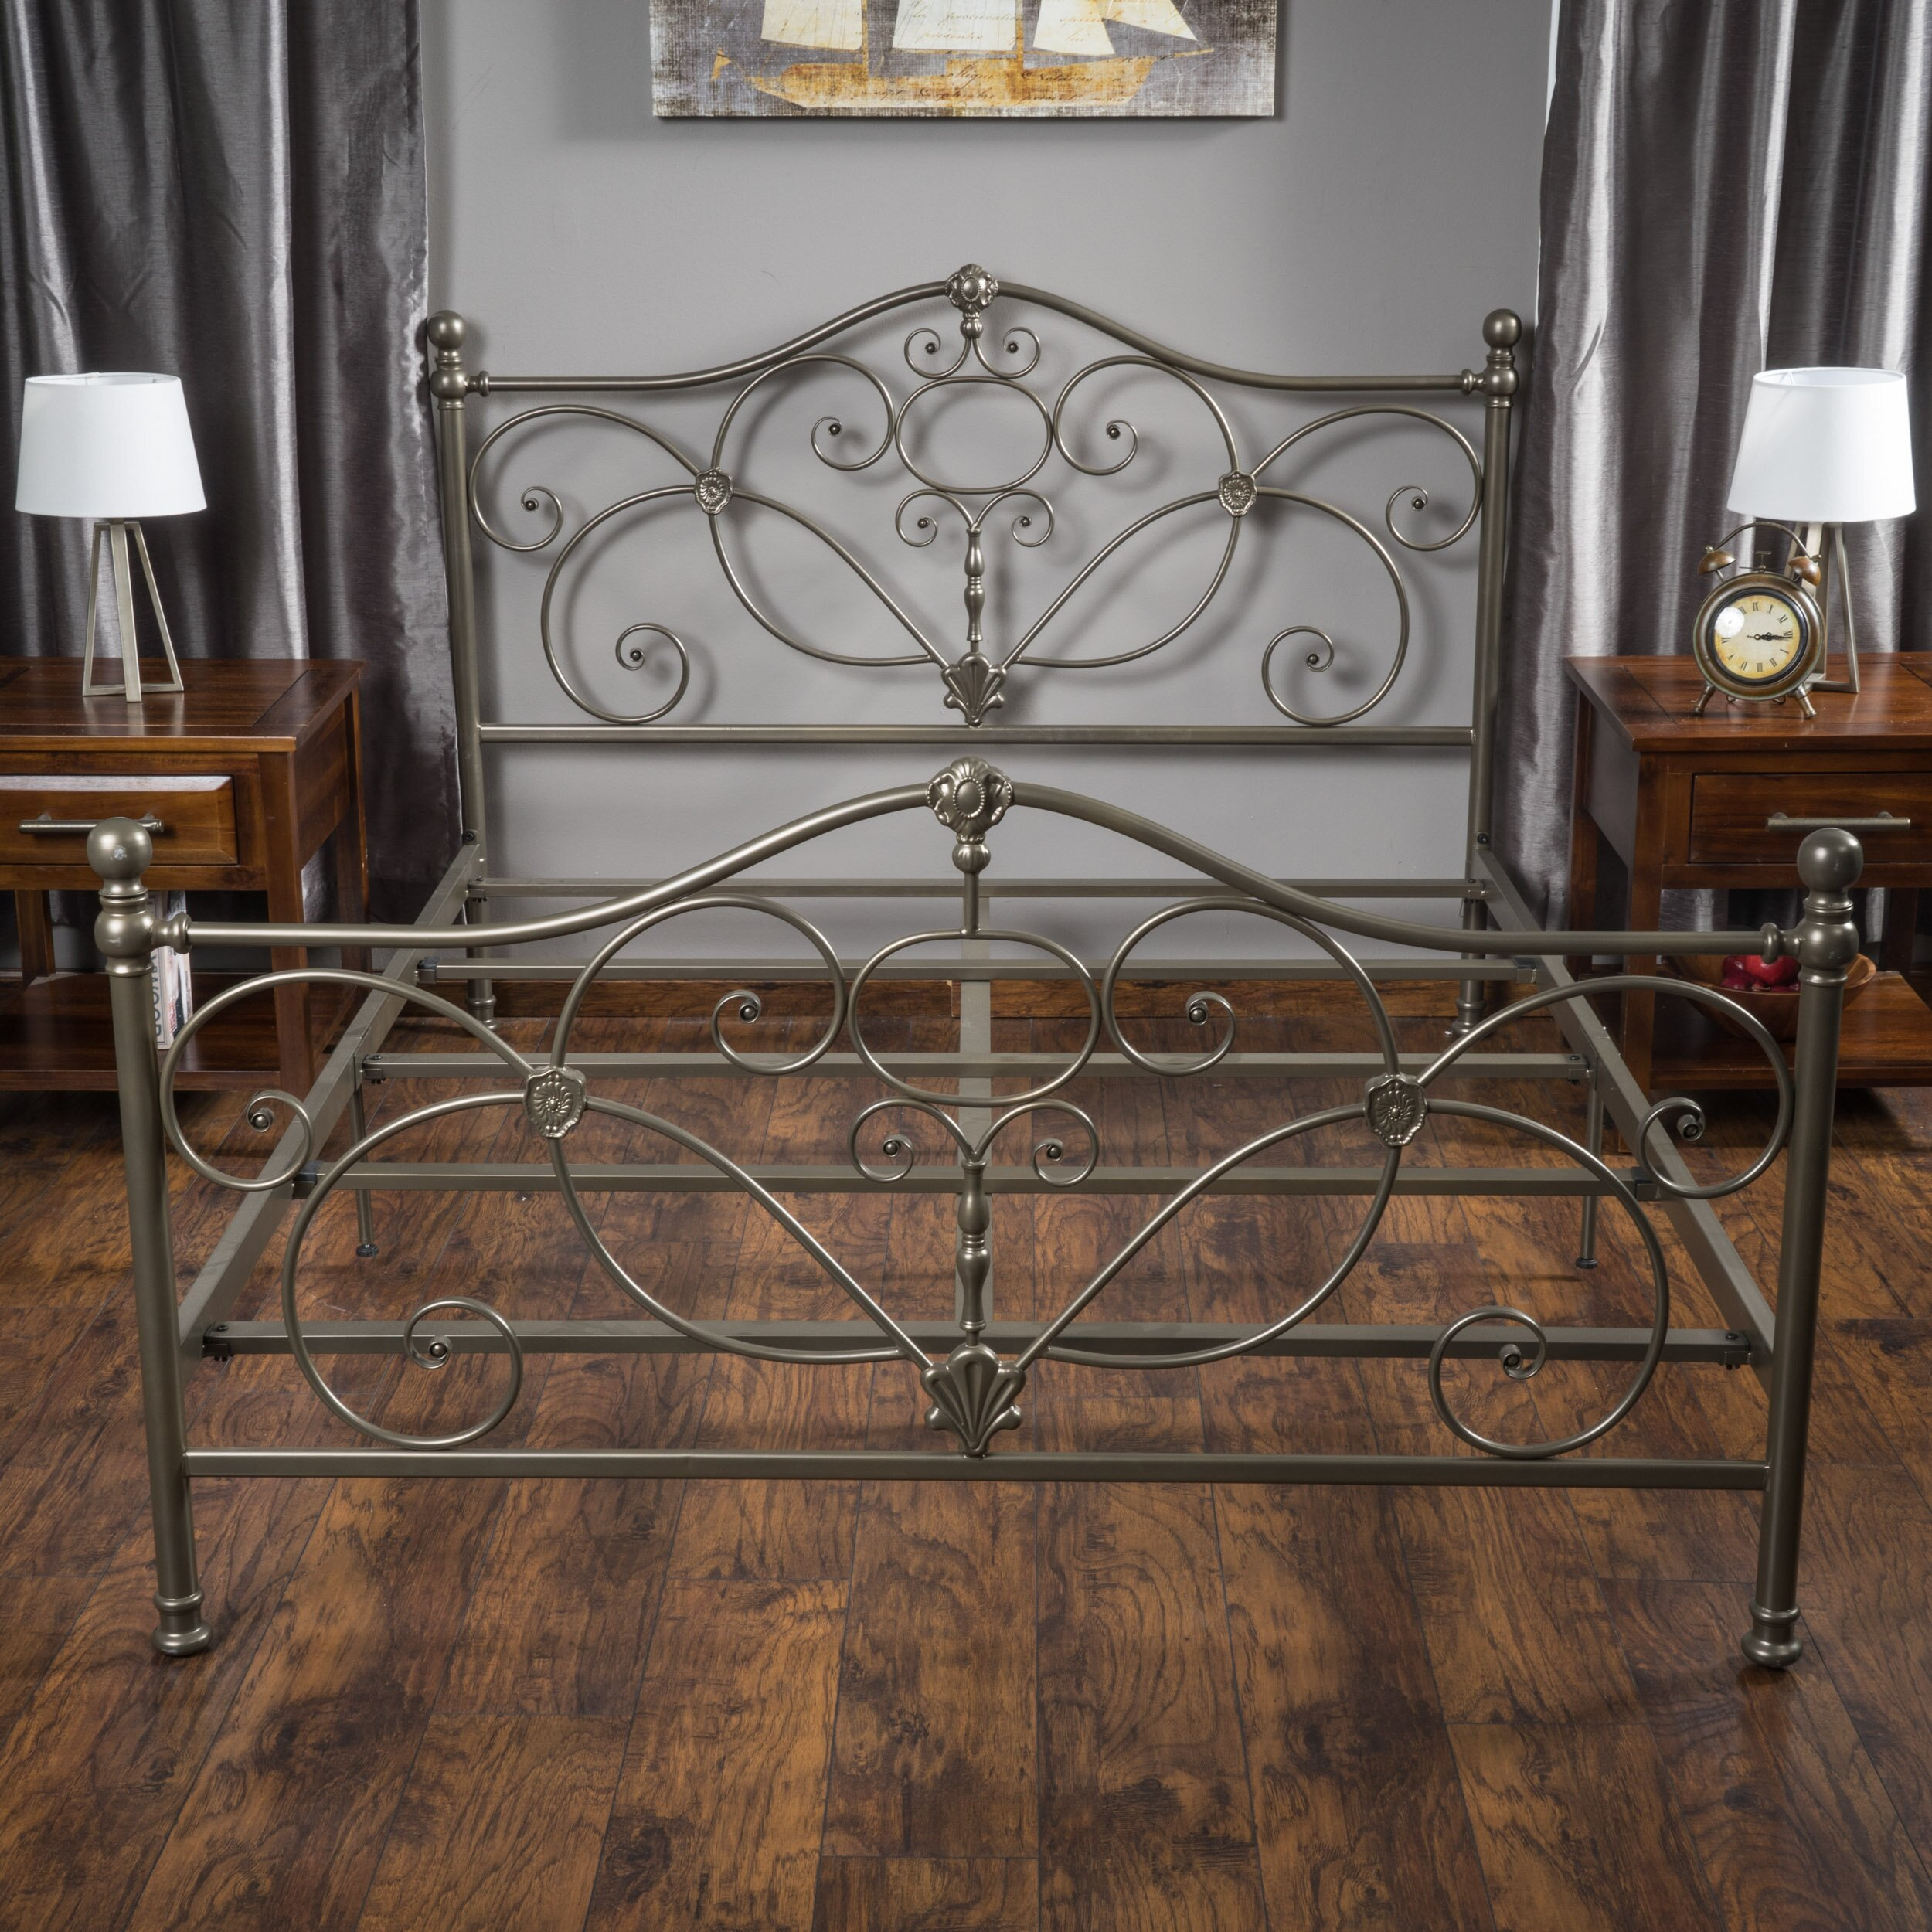 Weston Wy Steel Buildings Reviews 2: Charlton Home Bed Frame & Reviews